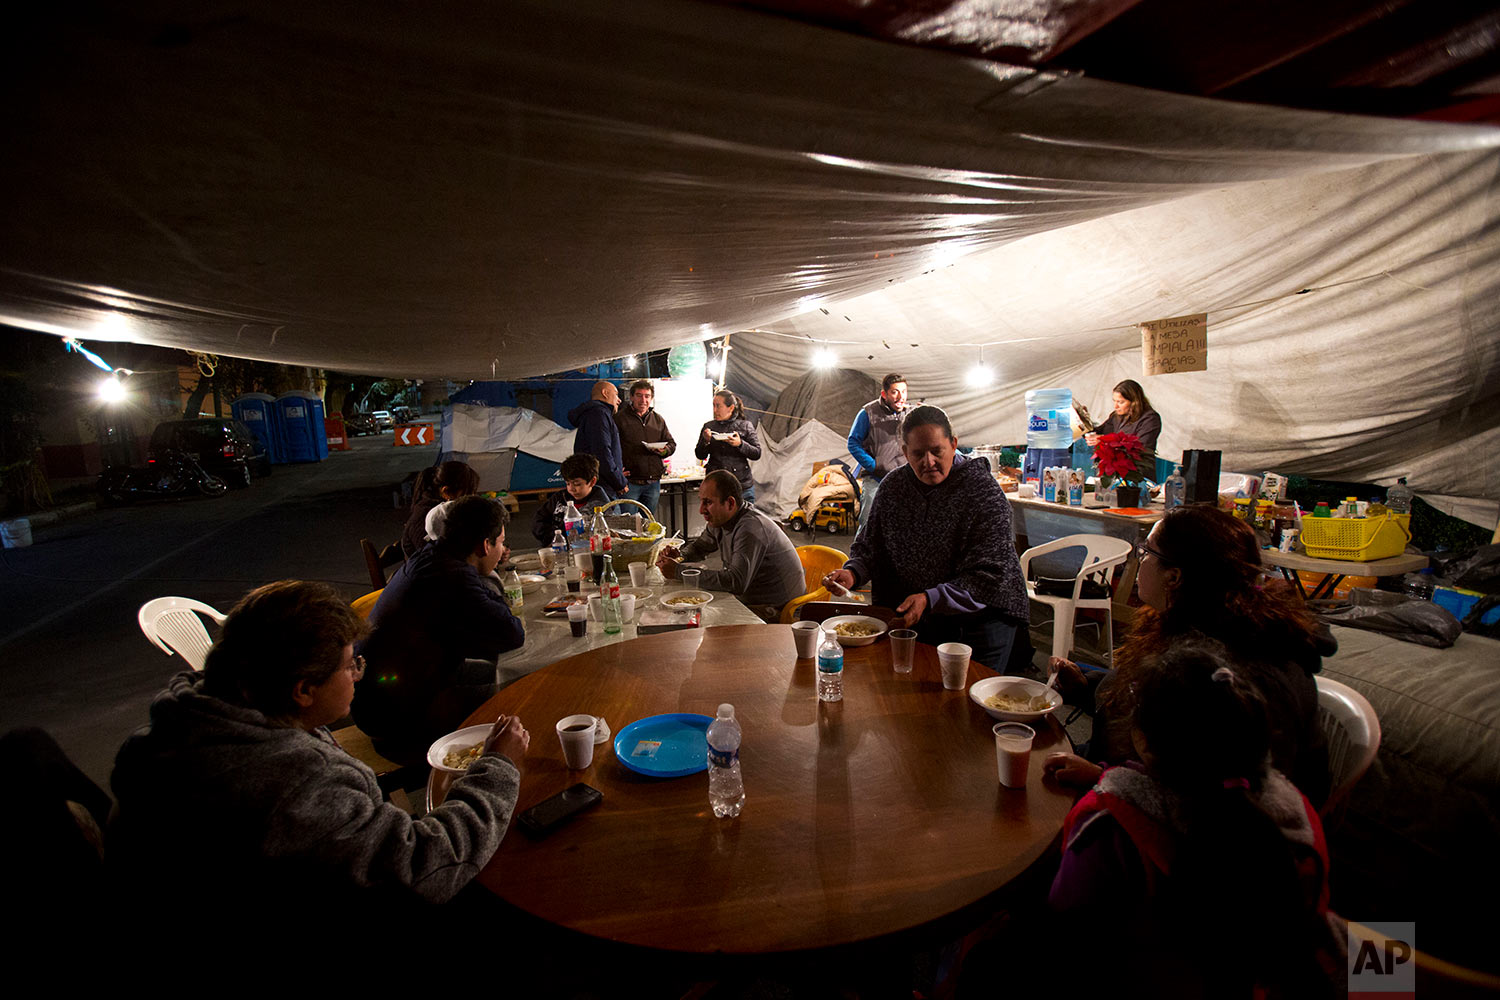 """In this Jan. 12, 2018 photo, residents of an earthquake-damaged apartment building at 5 de Febrero and Guipuzcoa gather for a hot dinner brought by volunteers from the earthquake relief group """"Ayudame Hoy,"""" in the tent camp where they have been living outside their building in Mexico City. (AP Photo/Rebecca Blackwell)"""